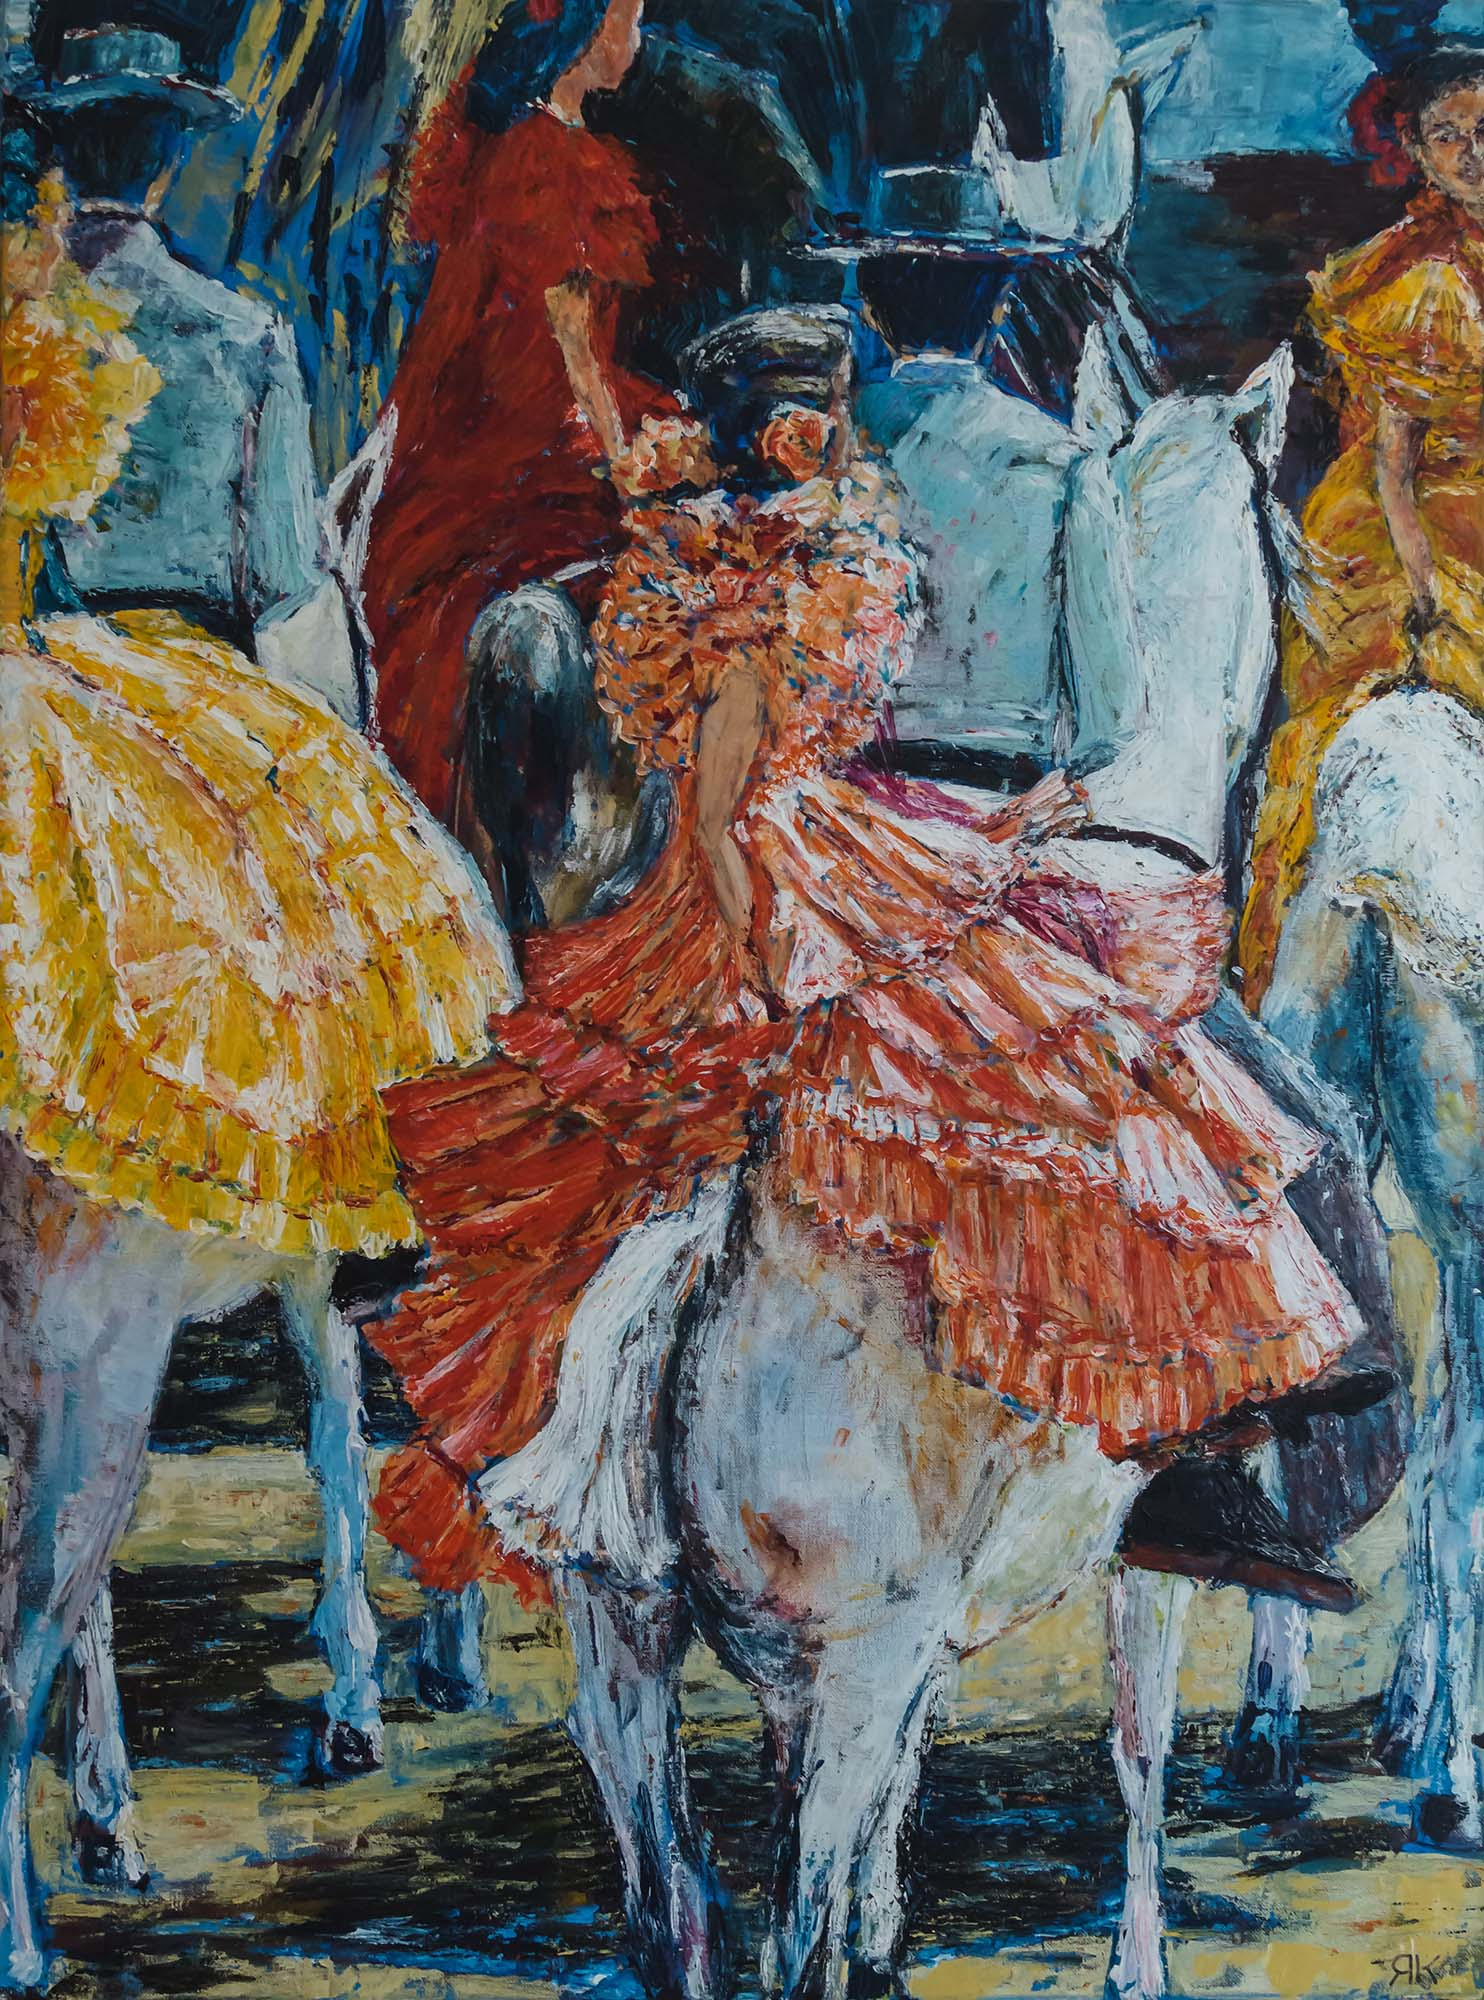 Women in flamenco dresses on horses in Andalucia by Ria Kieboom